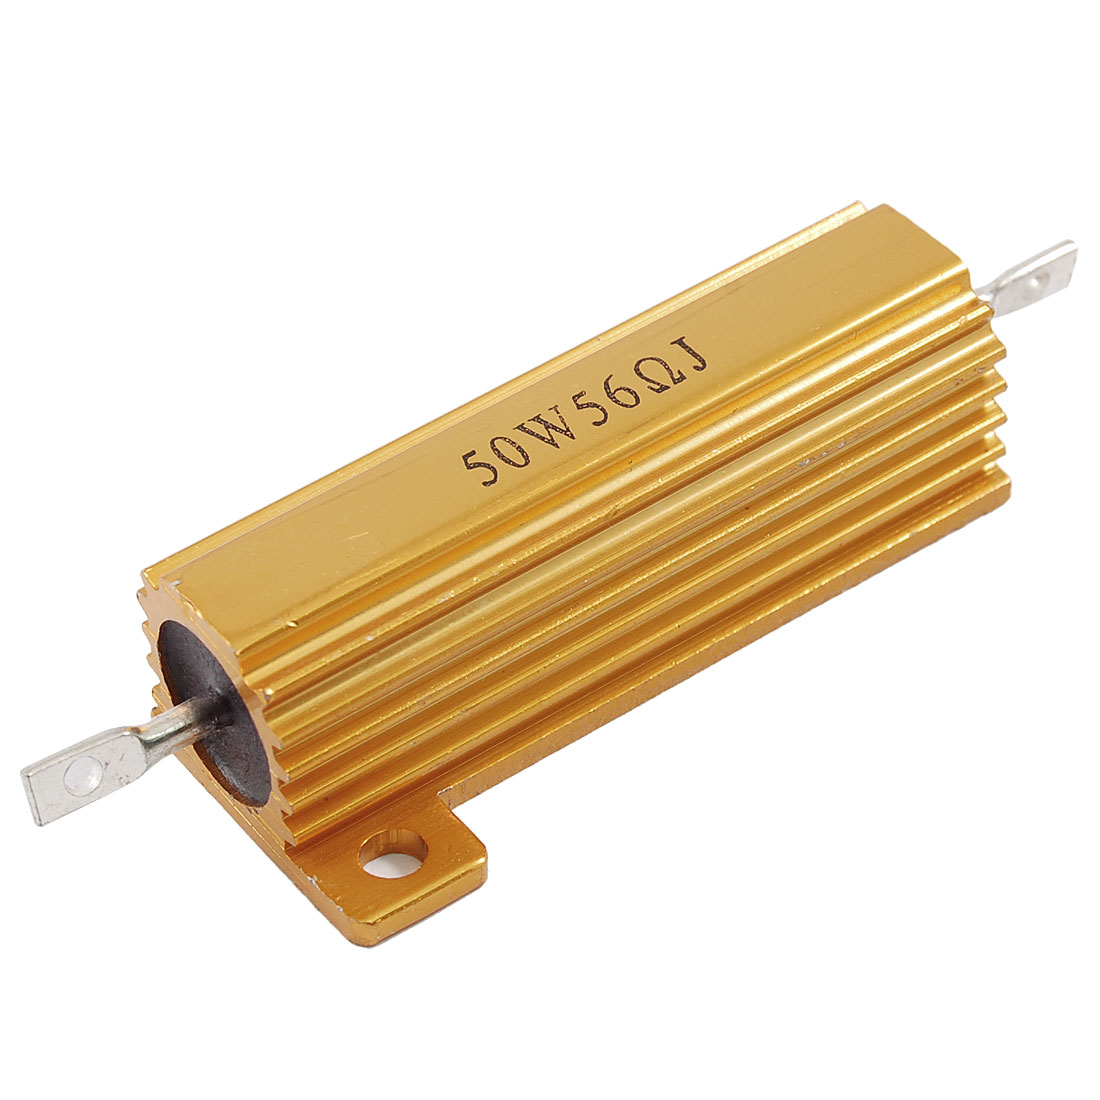 Chassis Mounted 50W 56 Ohm 5% Aluminum Case Wirewound Resistor Ozrts